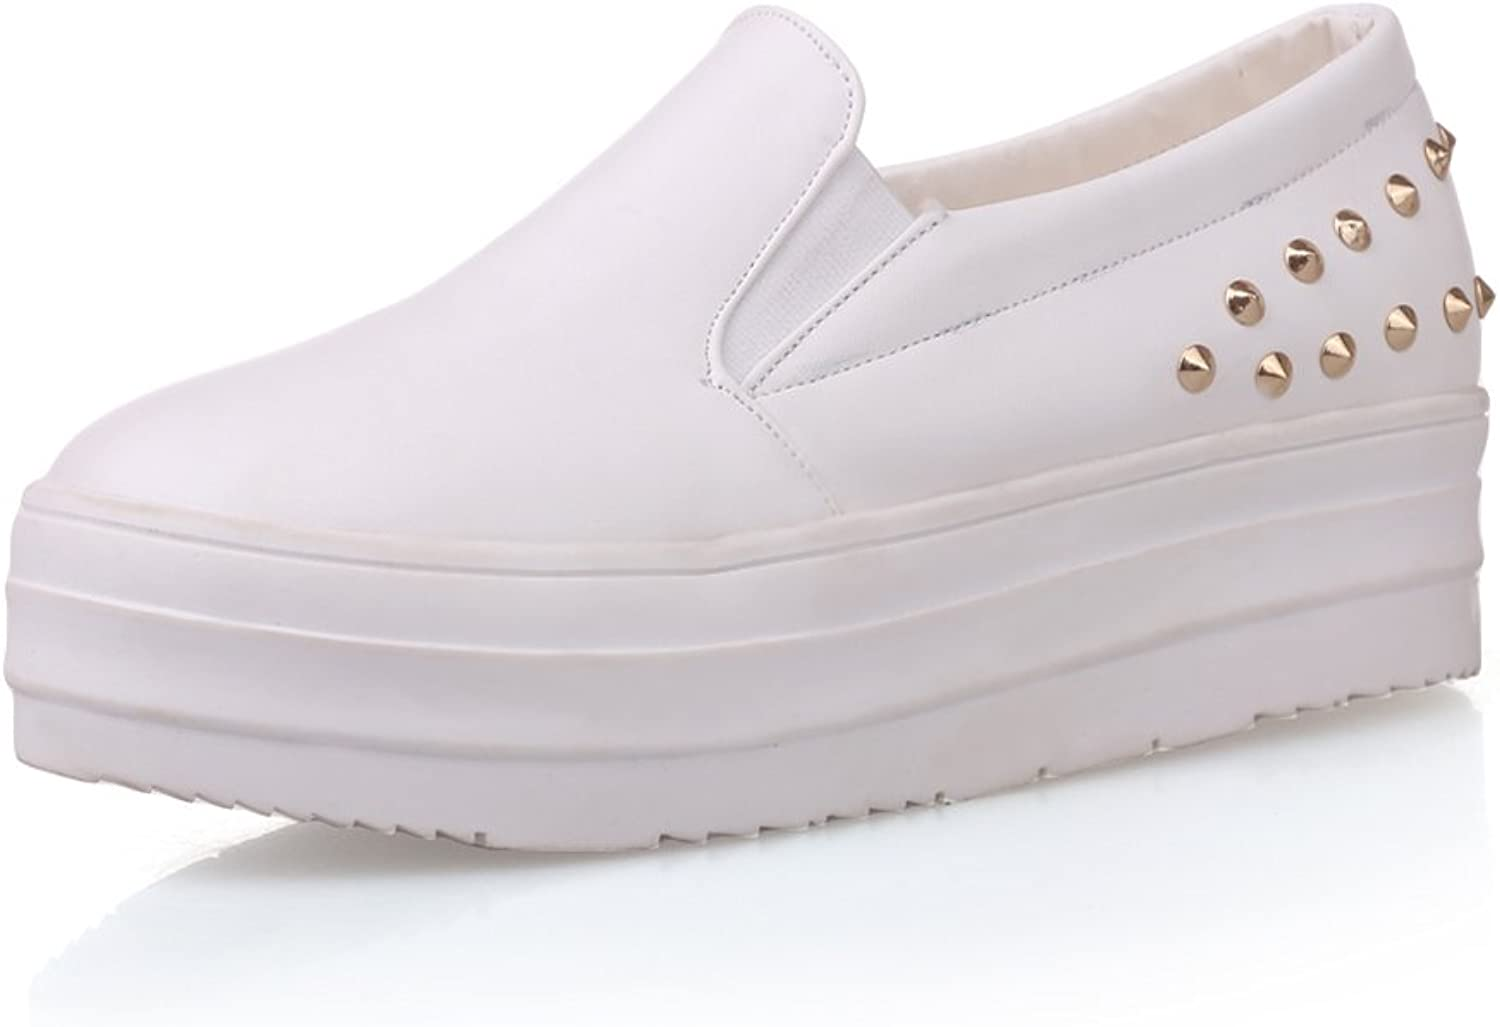 Lucksender Womens Casual Wedge Heel Loafer shoes with Rivet